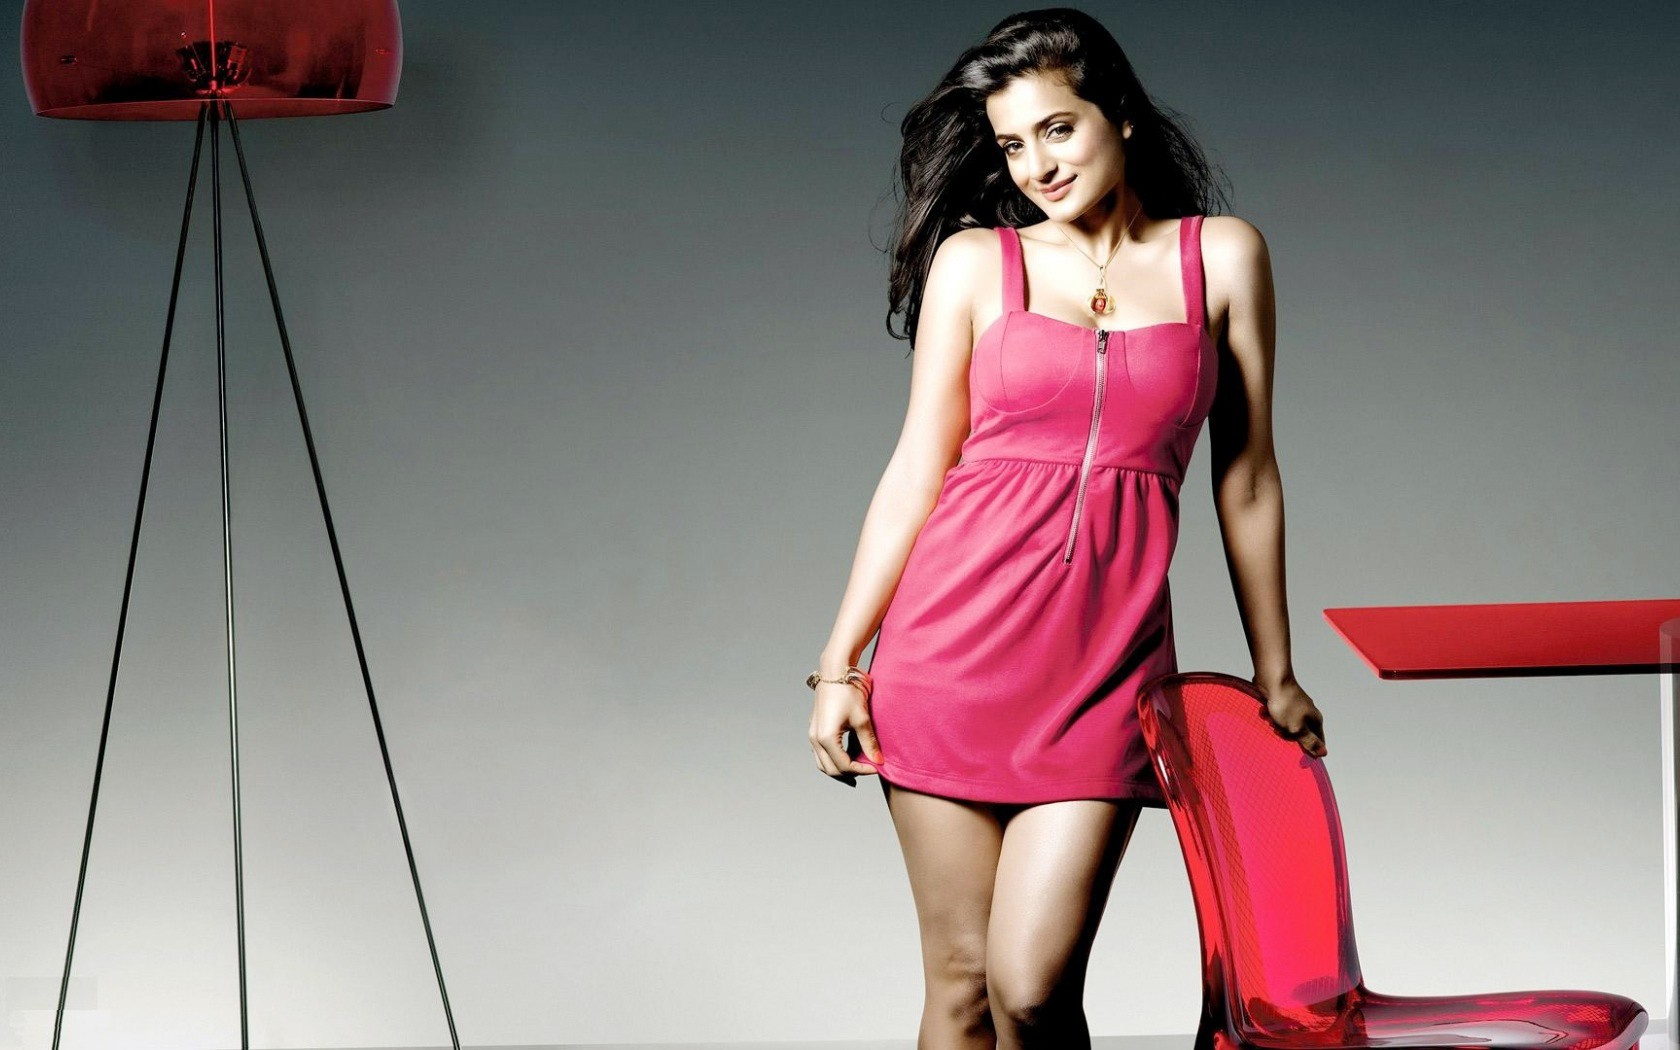 Ameesha-Patel-Pink-Dress-HD-Wallpaper